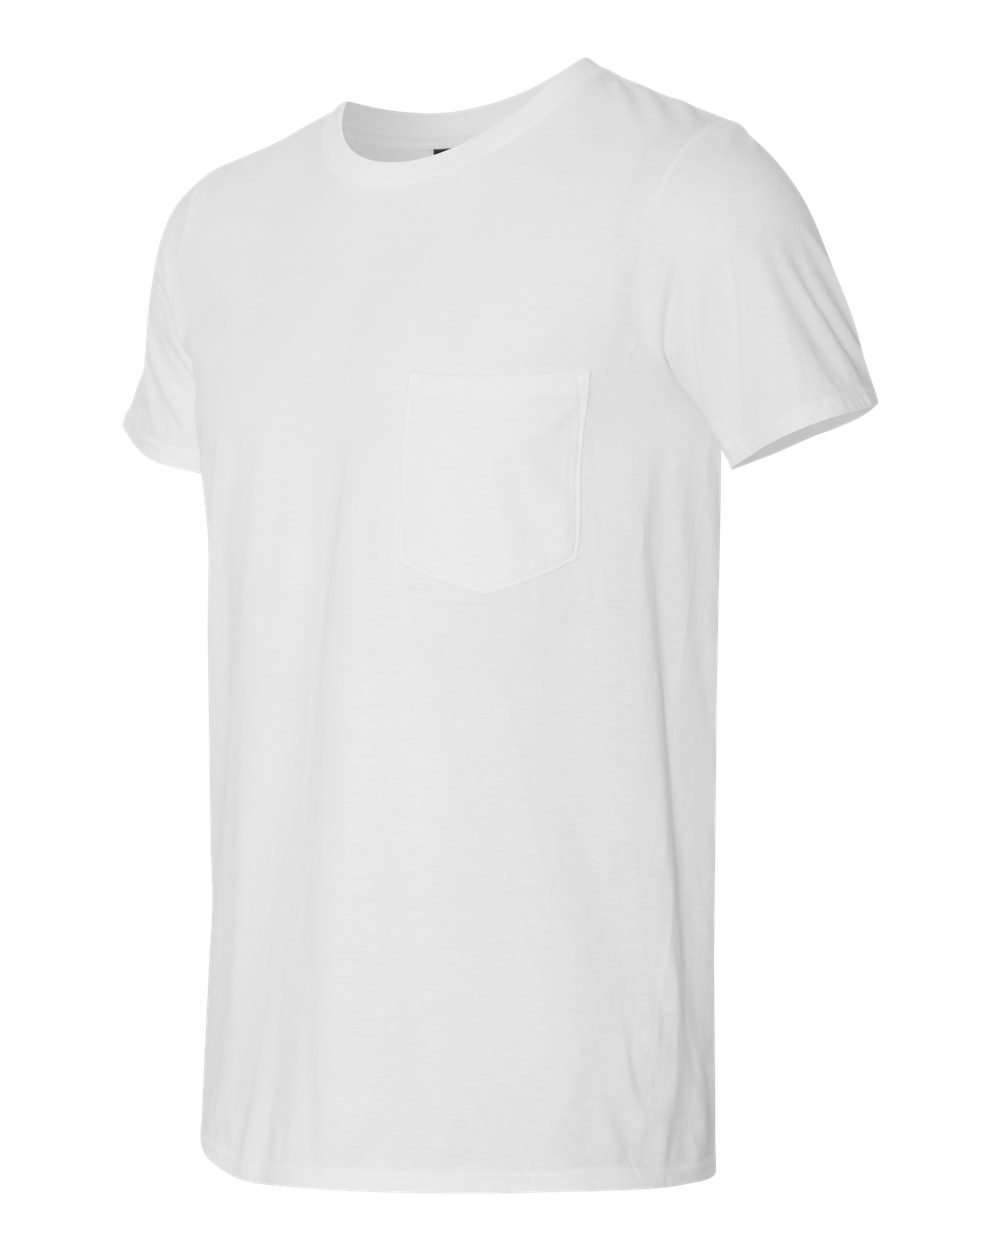 Anvil 983 - Lightweight Pocket T-Shirt